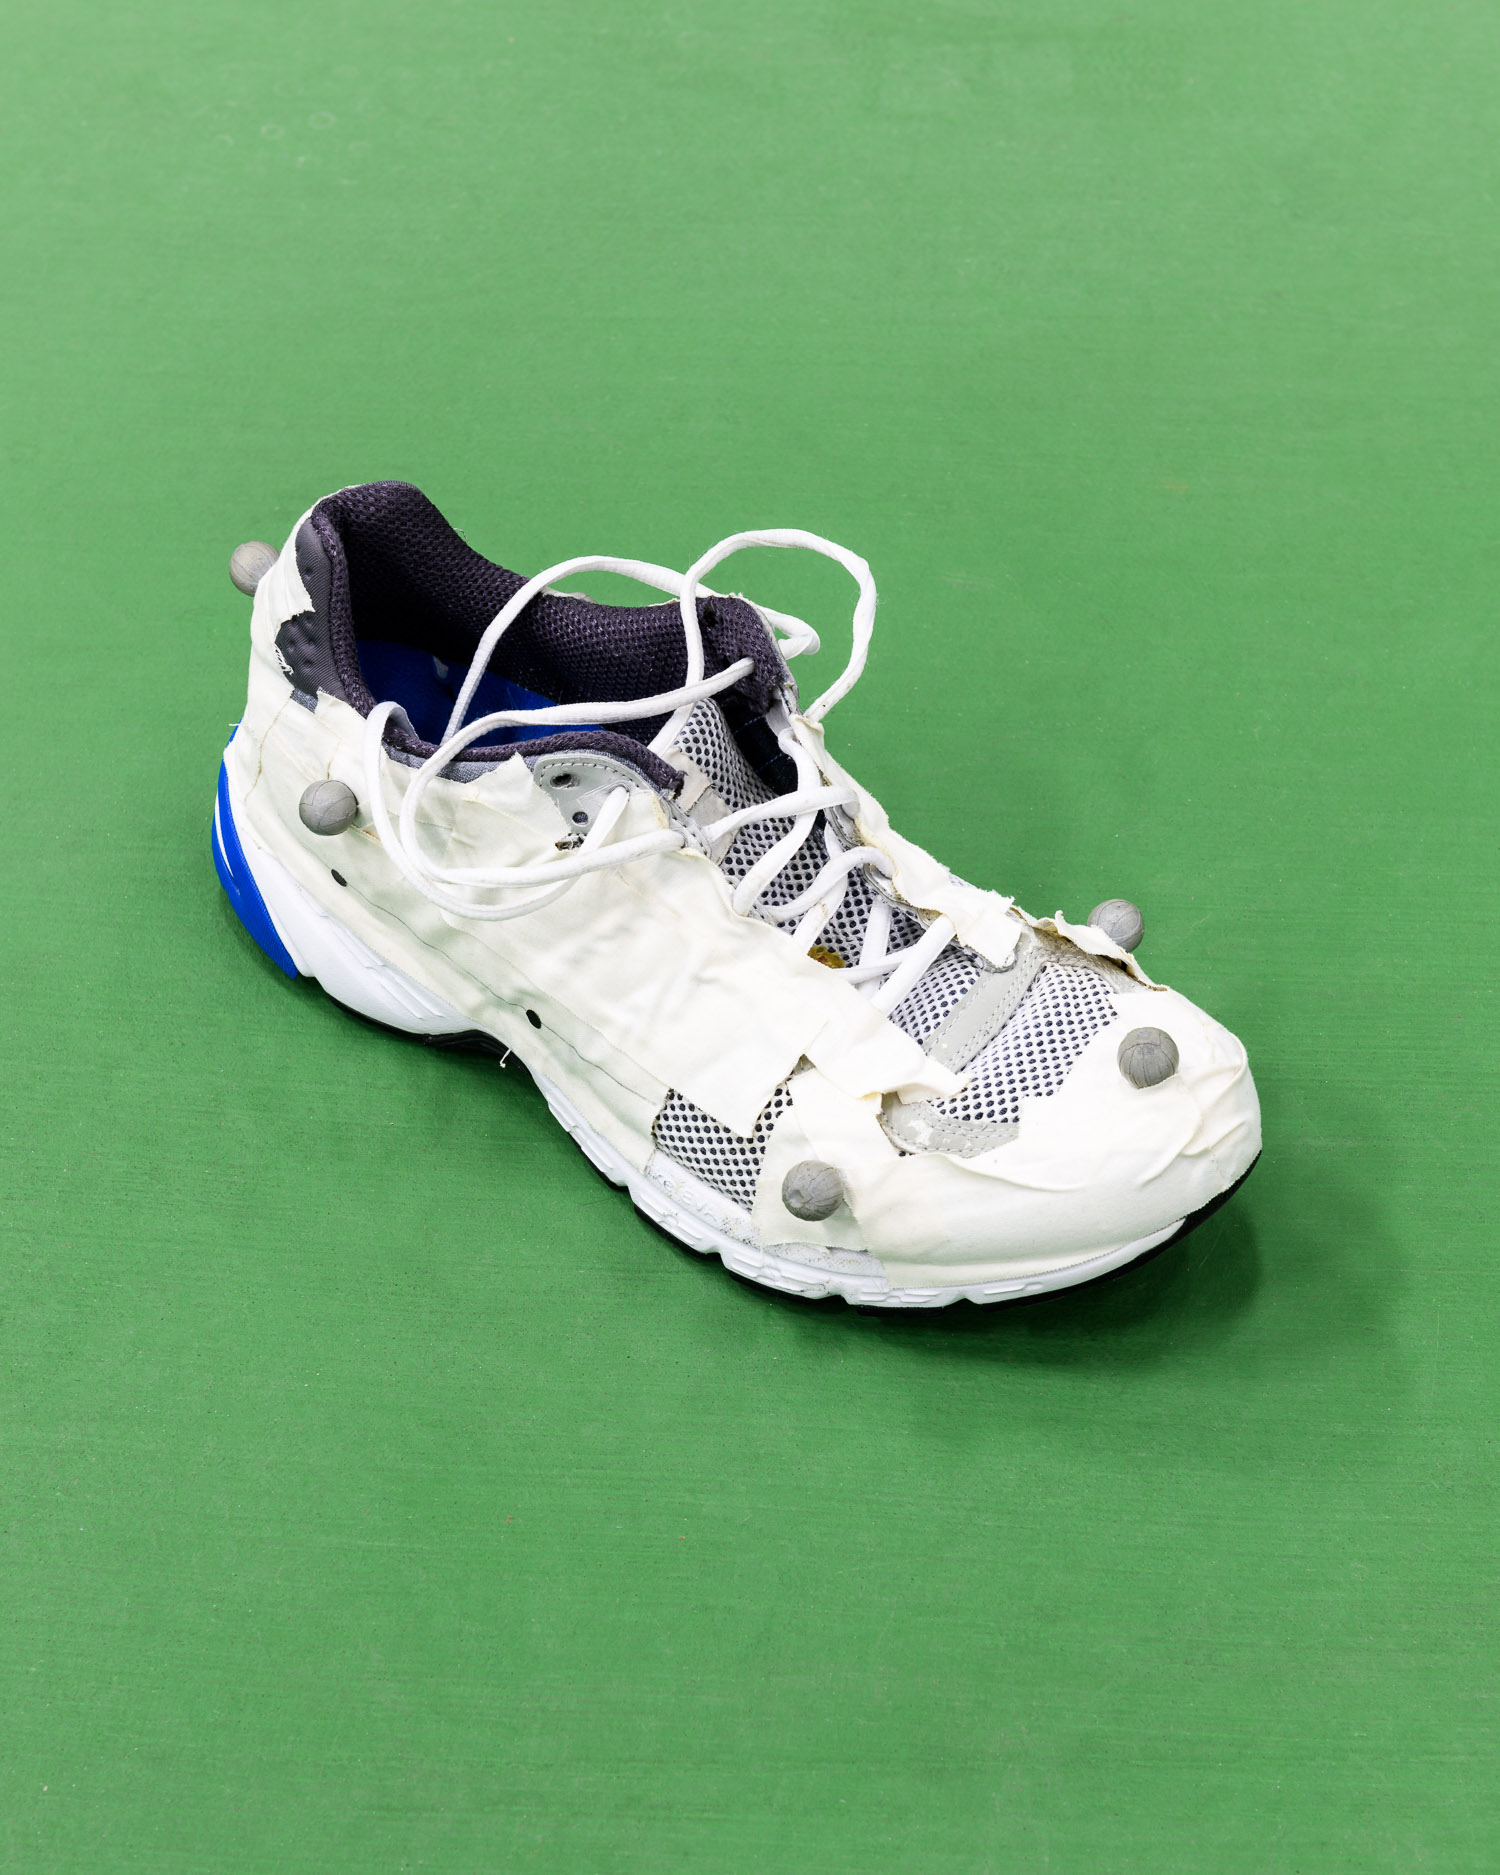 Running shoe prepared for motion analysis test